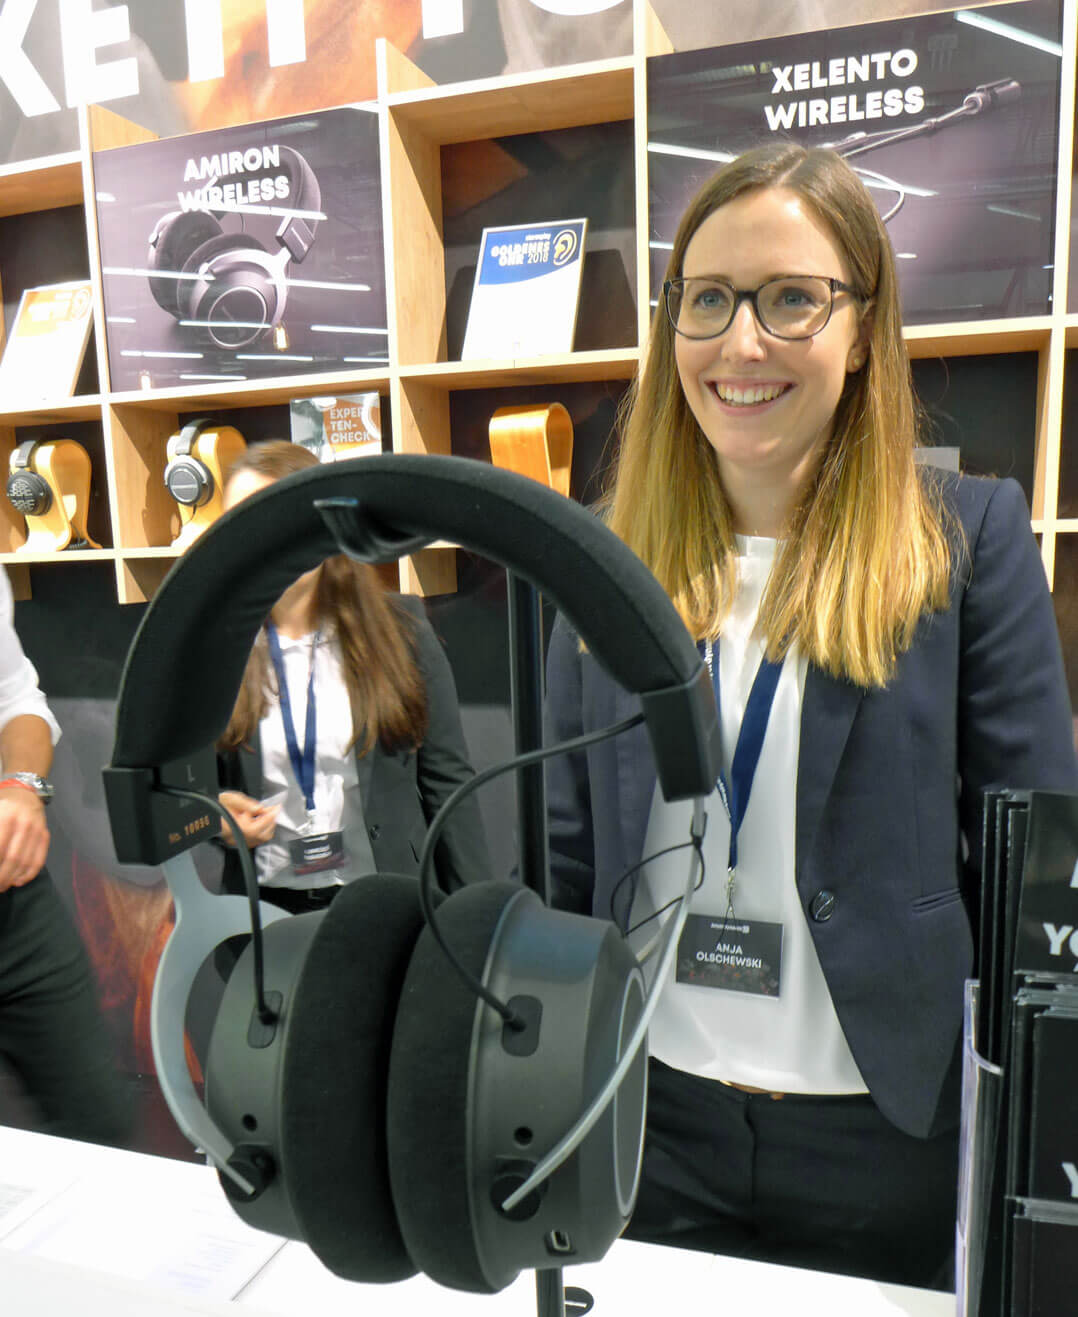 Beyerdynamic Amiron Wireless [mit Anja Olschewski, Head of Marketing]